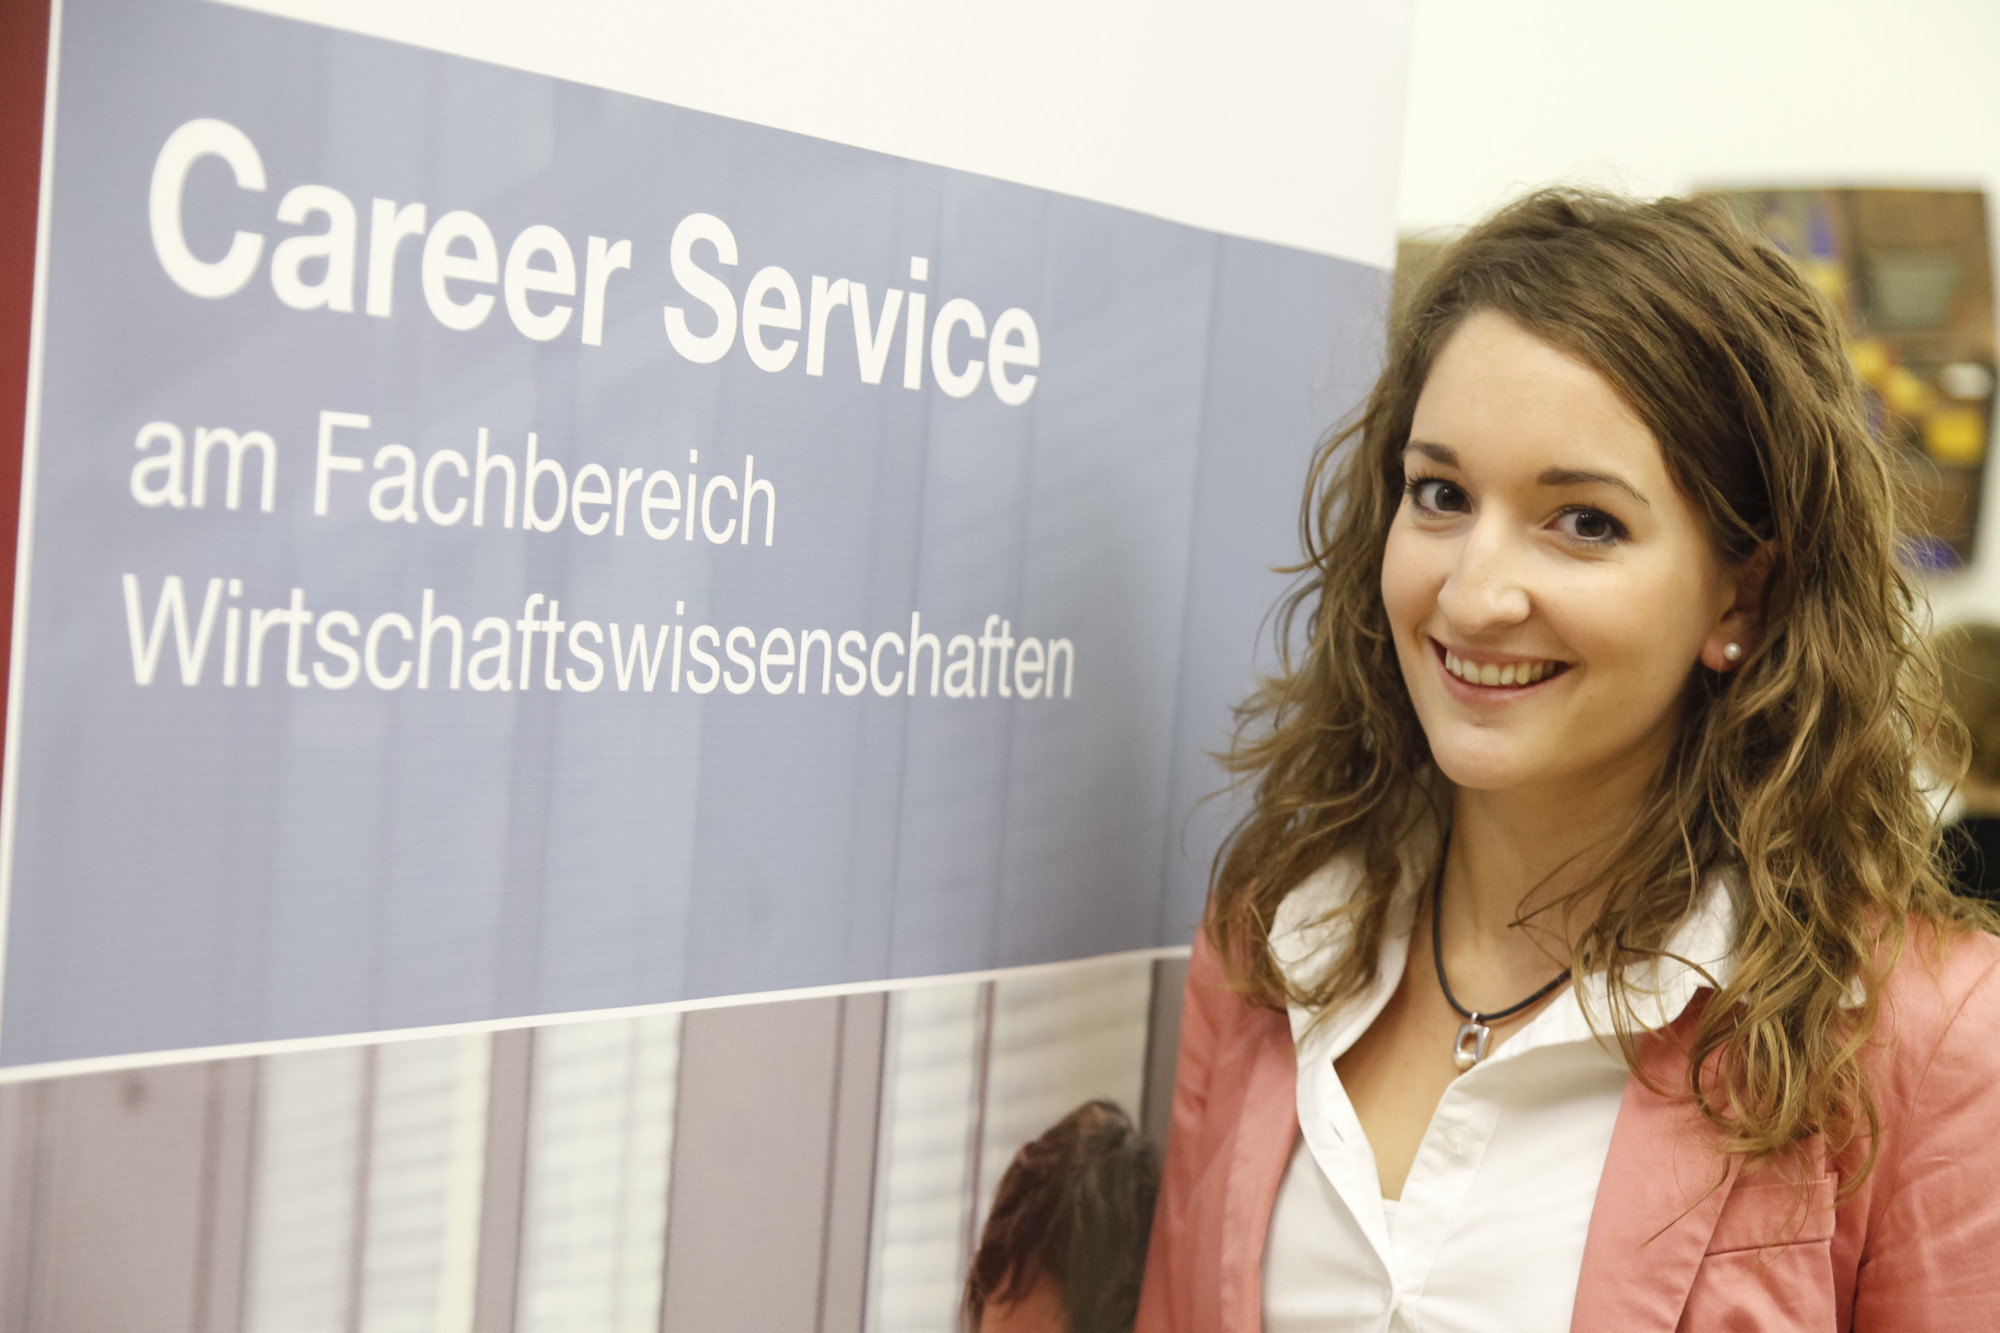 Bild Roll-Up Career Service